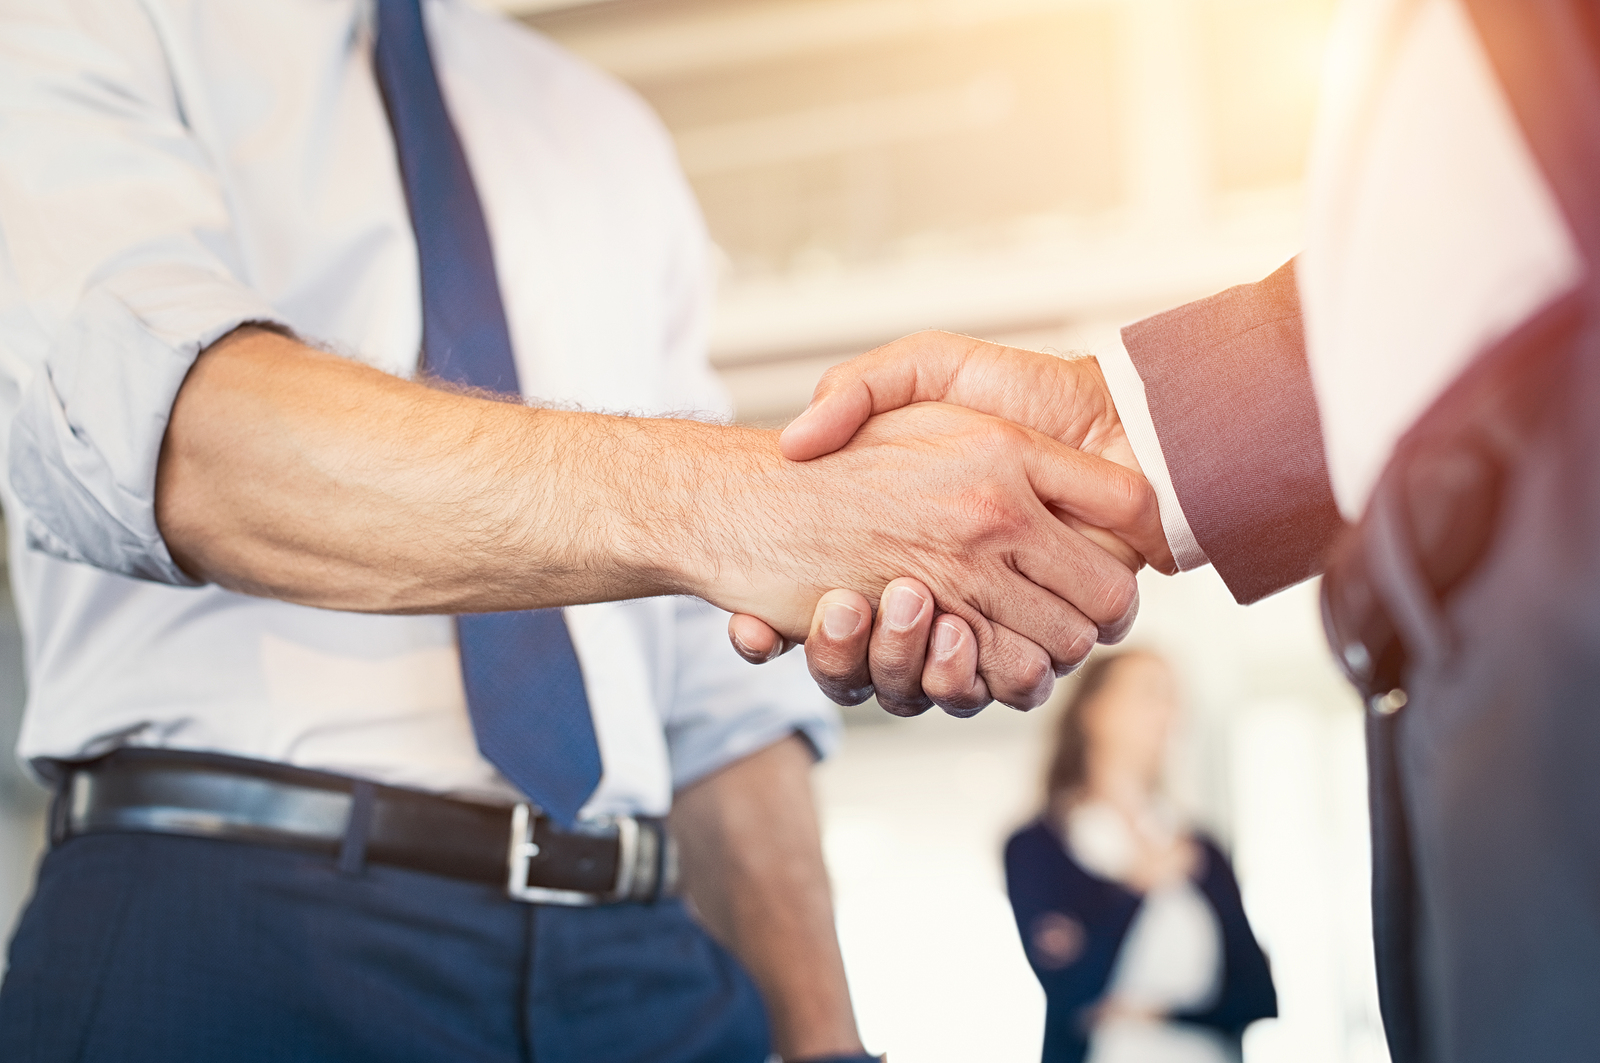 bigstock-Businessmen-shaking-hands-duri-209987992.jpg